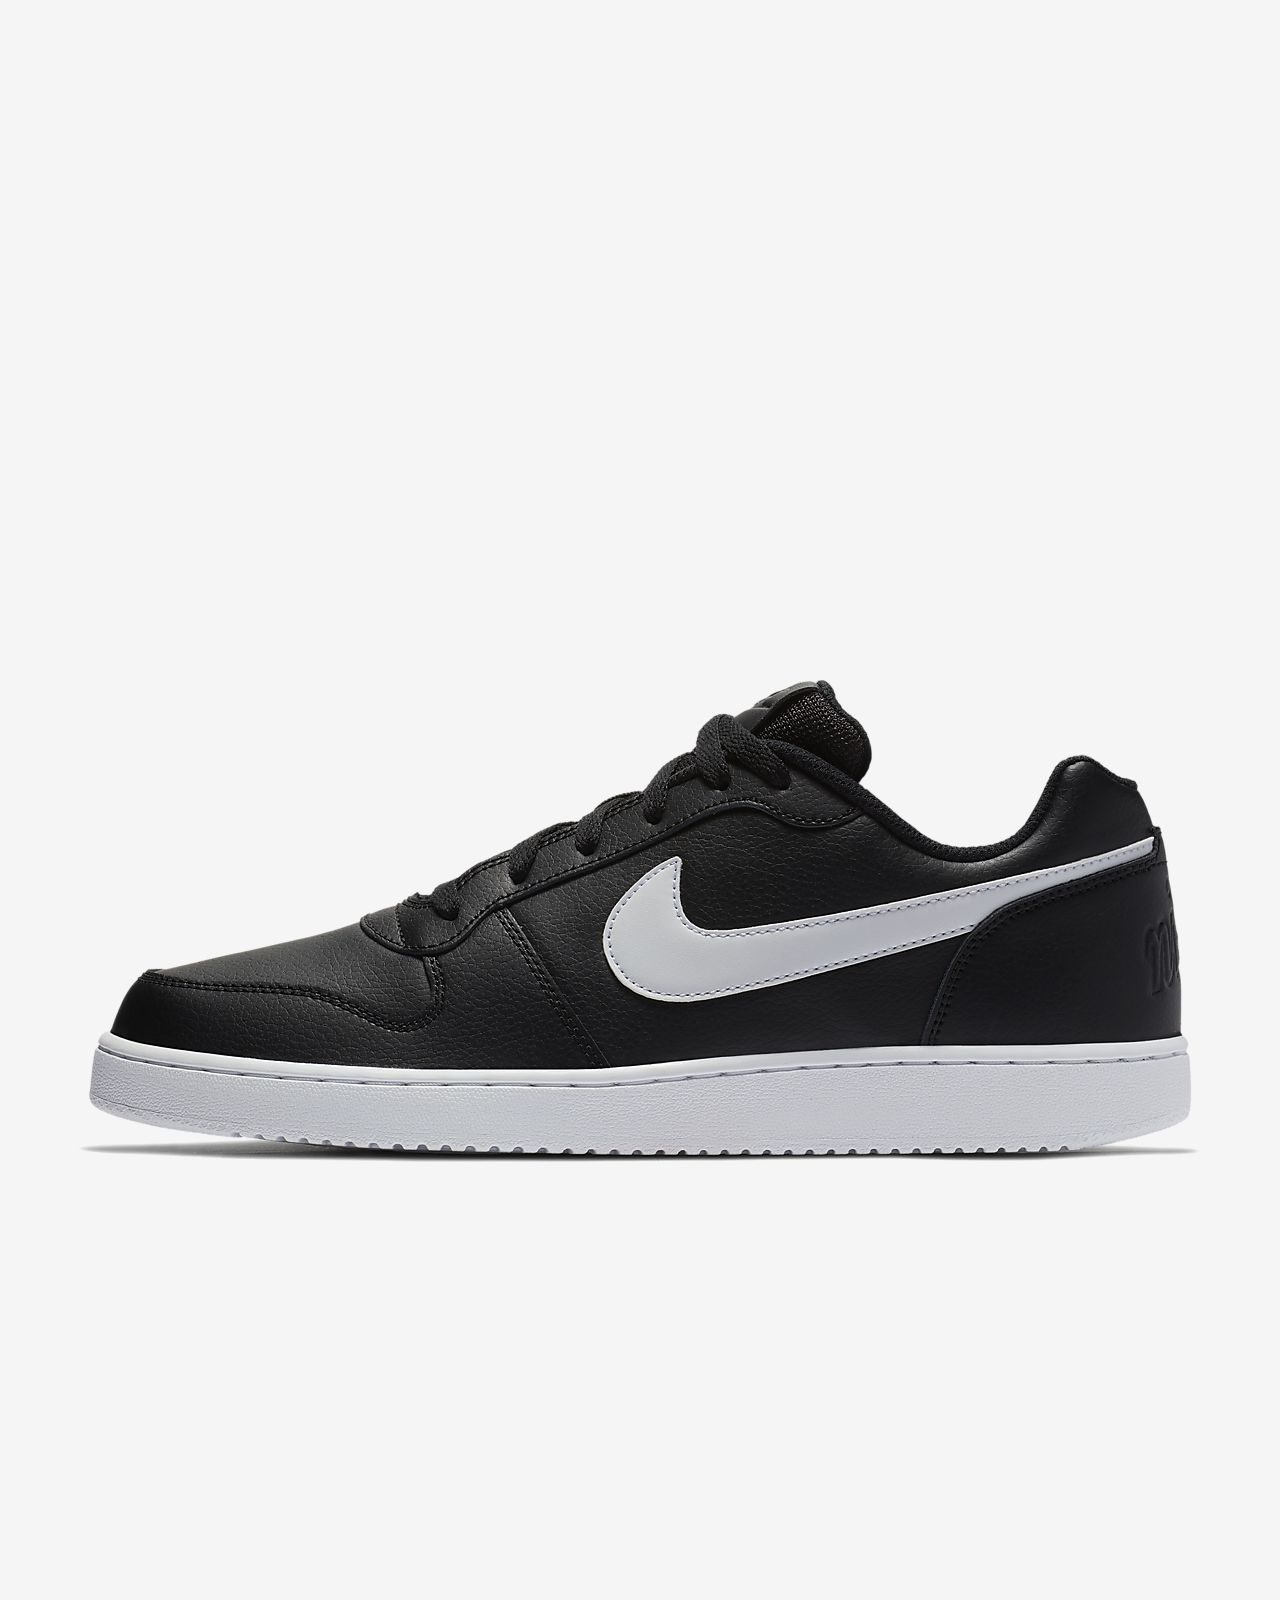 Nike Ebernon Low Herenschoen